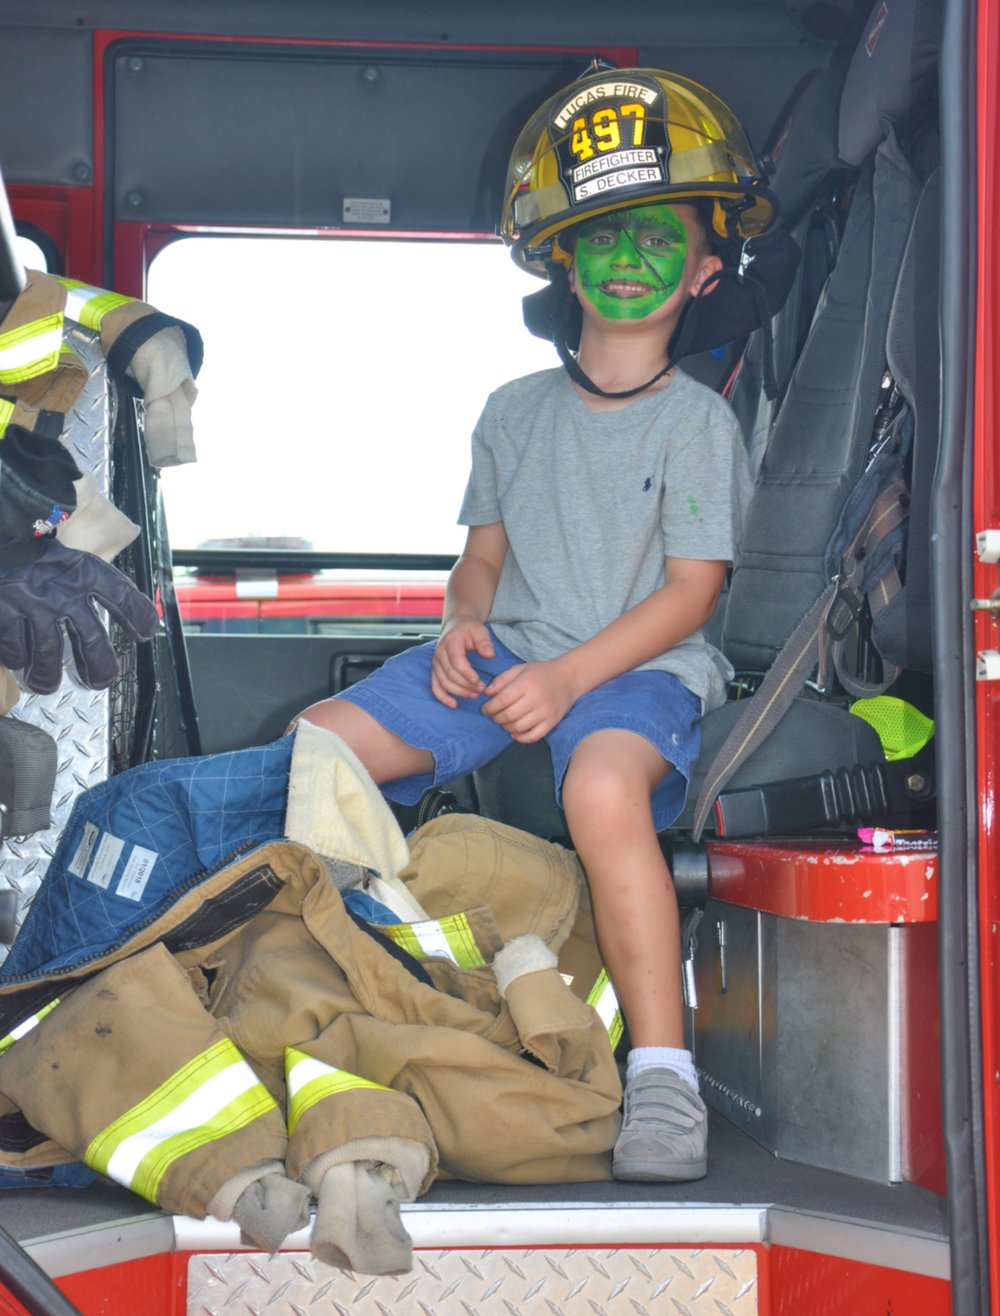 """Frankenstein"" wears firefighter gear in the back of a fire truck."